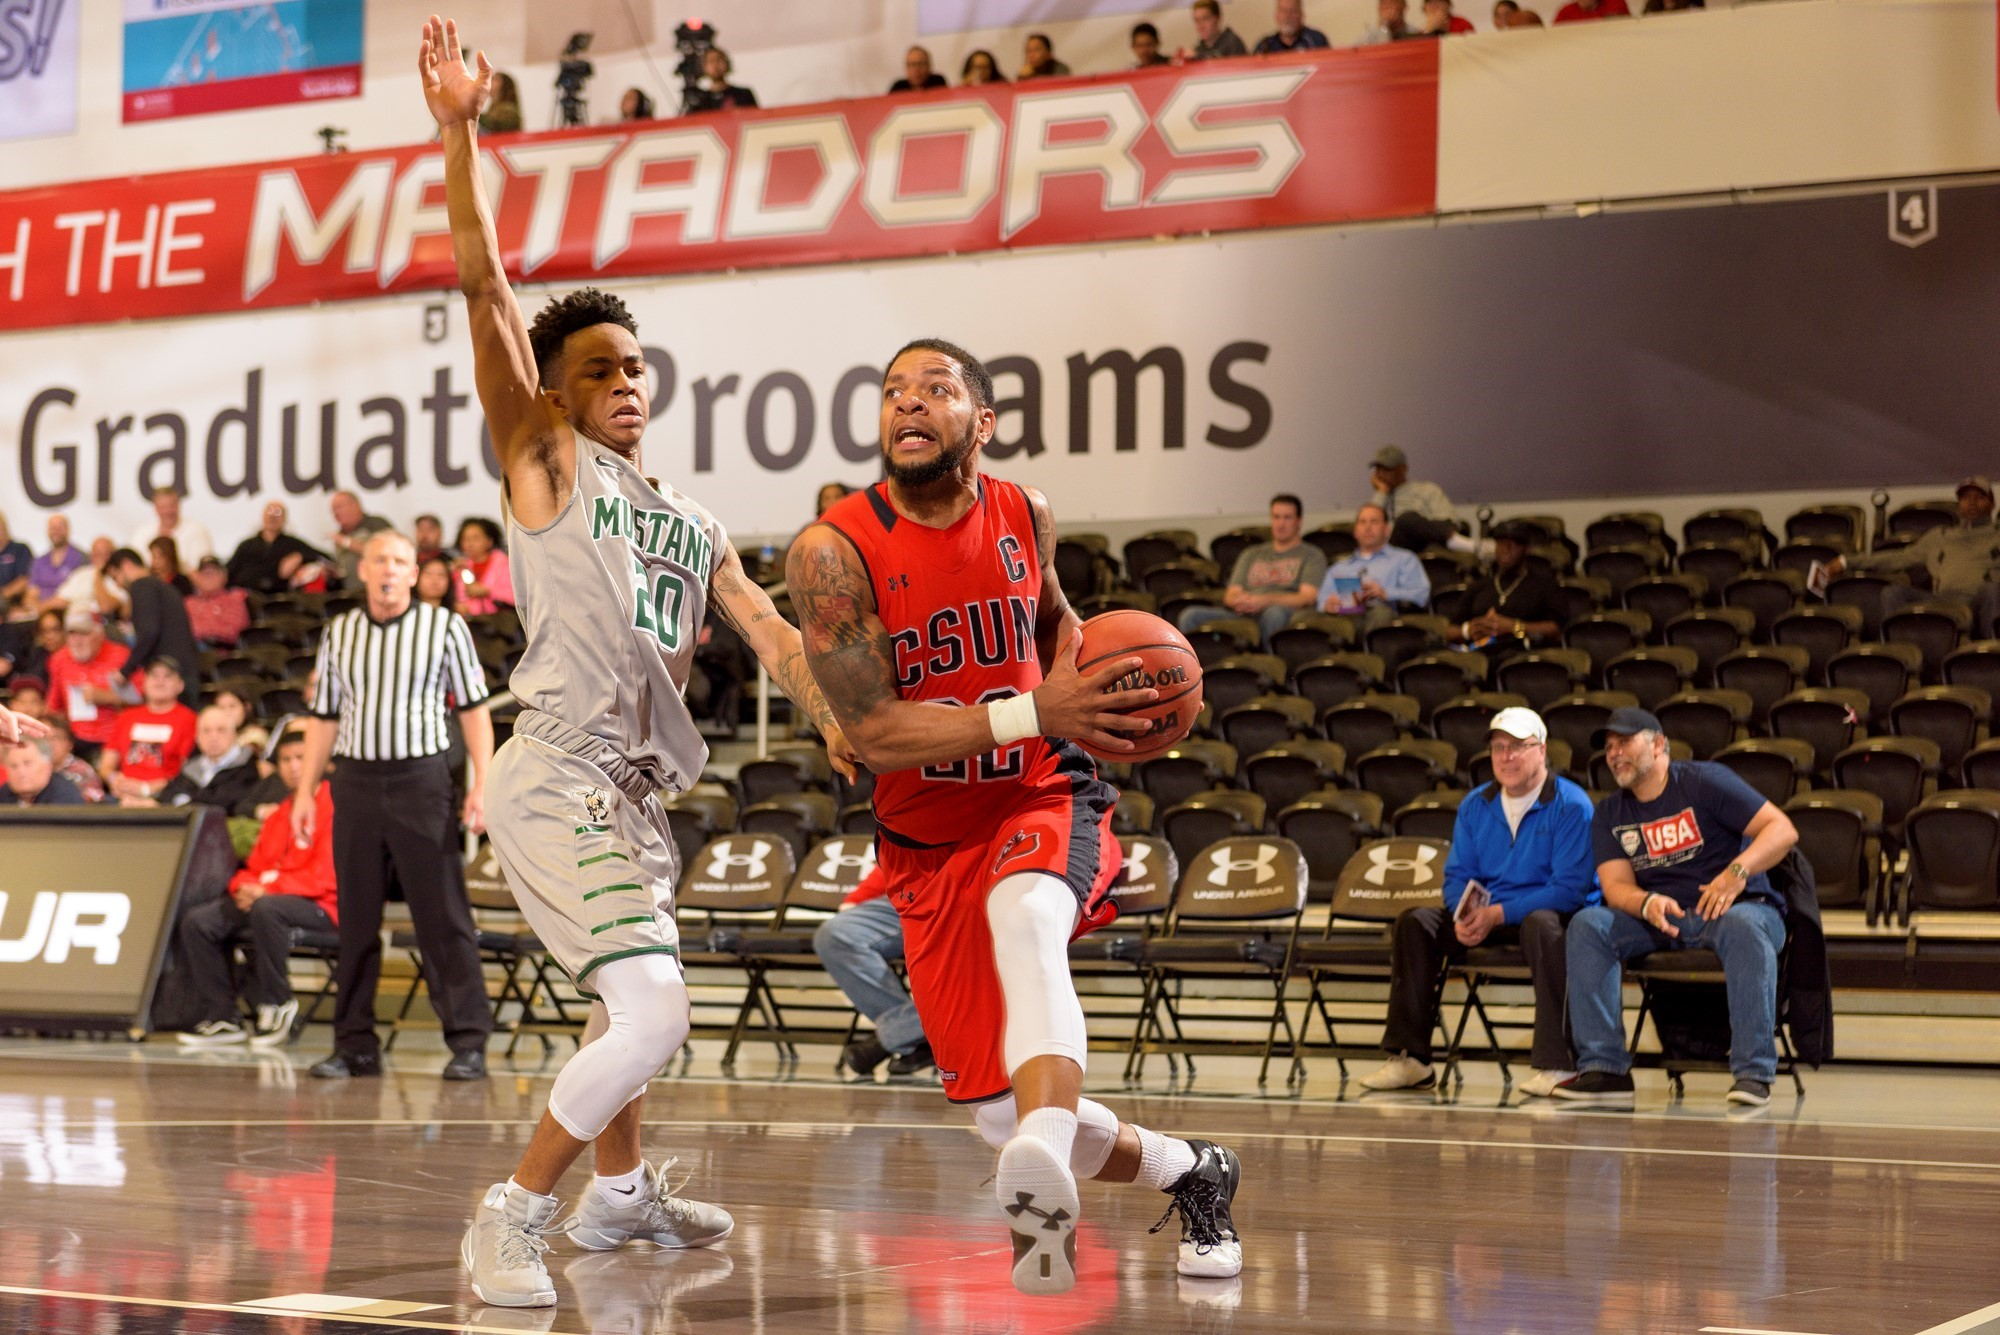 Aaron Parks 2016 17 Men S Basketball Csun Athletics Join facebook to connect with marcus parks and others you may know. aaron parks 2016 17 men s